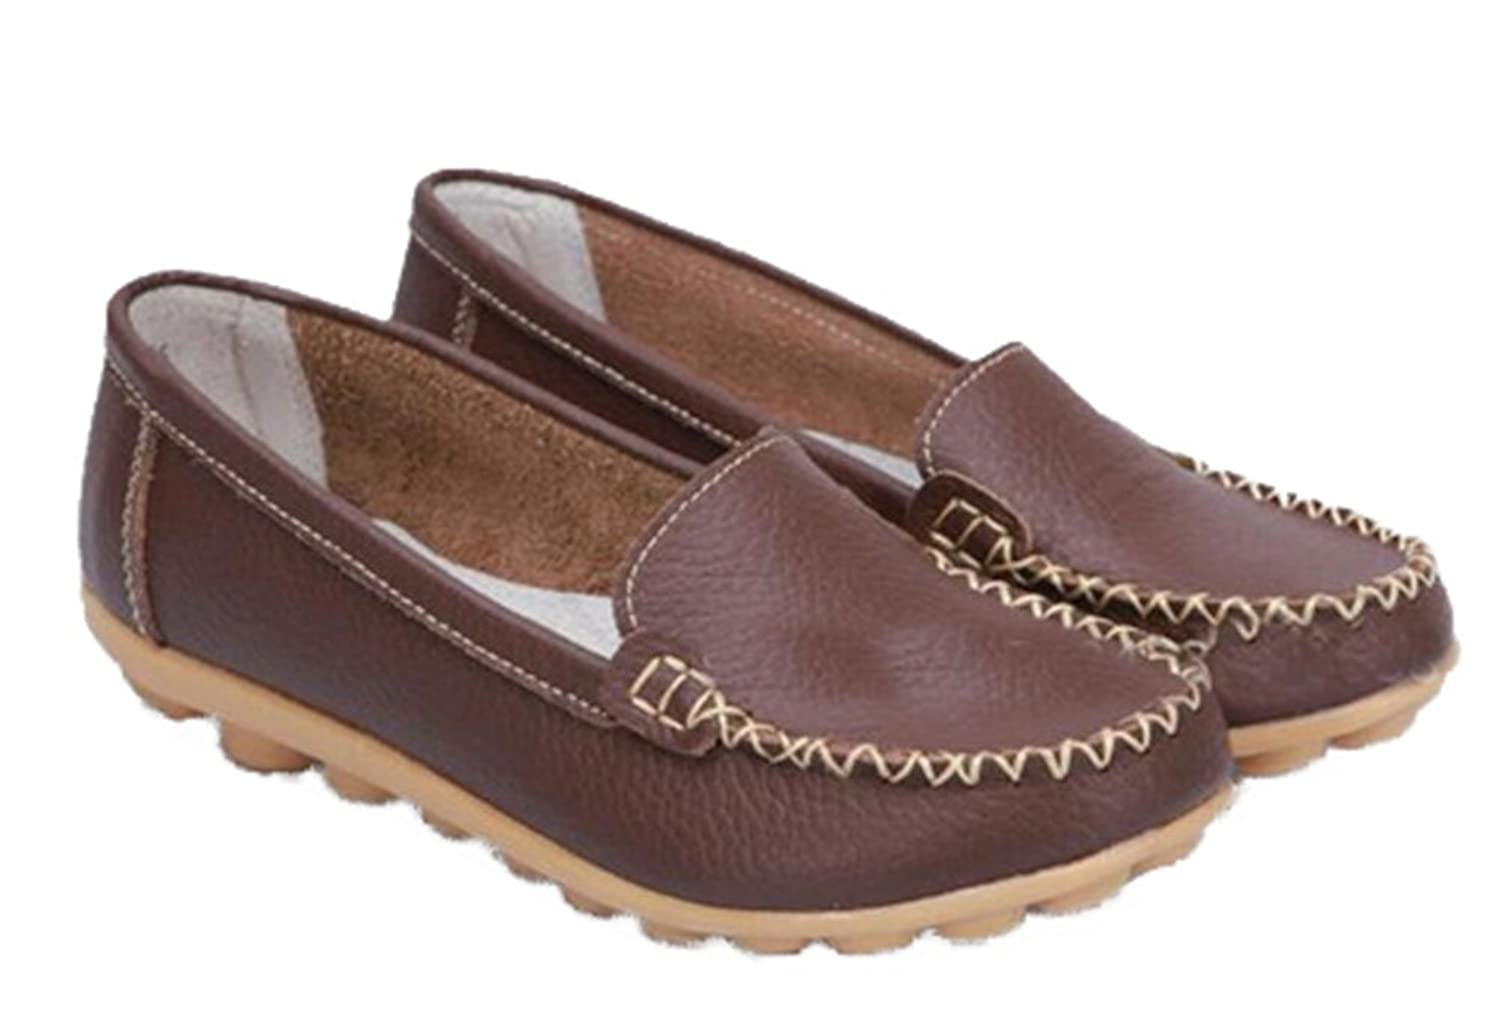 WenHong Womens Comfort Casual Flat Leather Work Walking Moccasin Shoes Loafers Flats